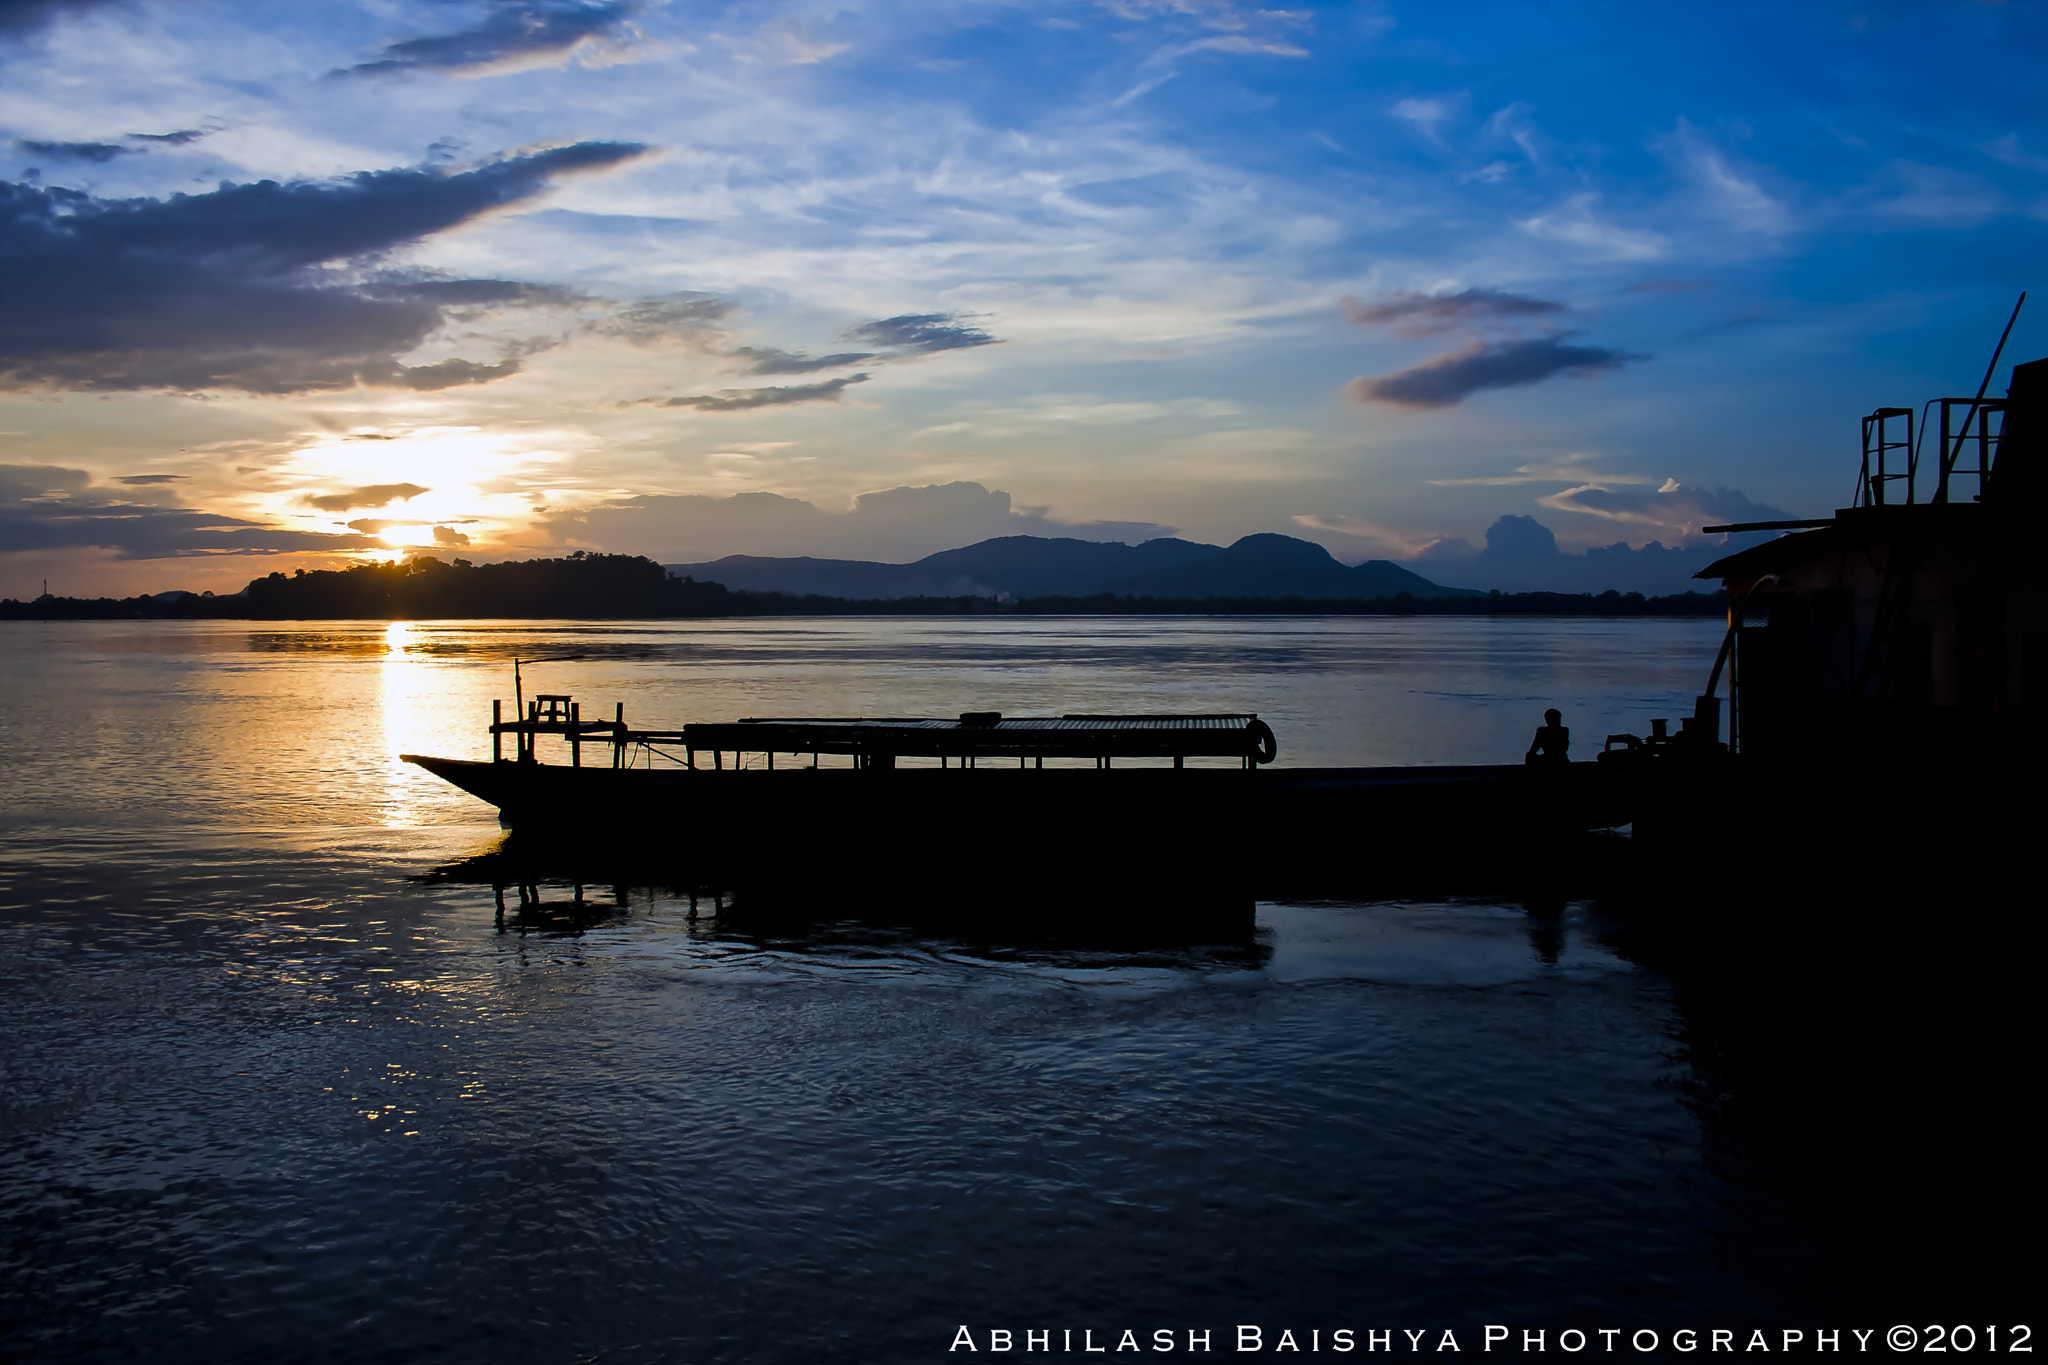 Photograph A peaceful evening. by Abhilash Baishya on 500px